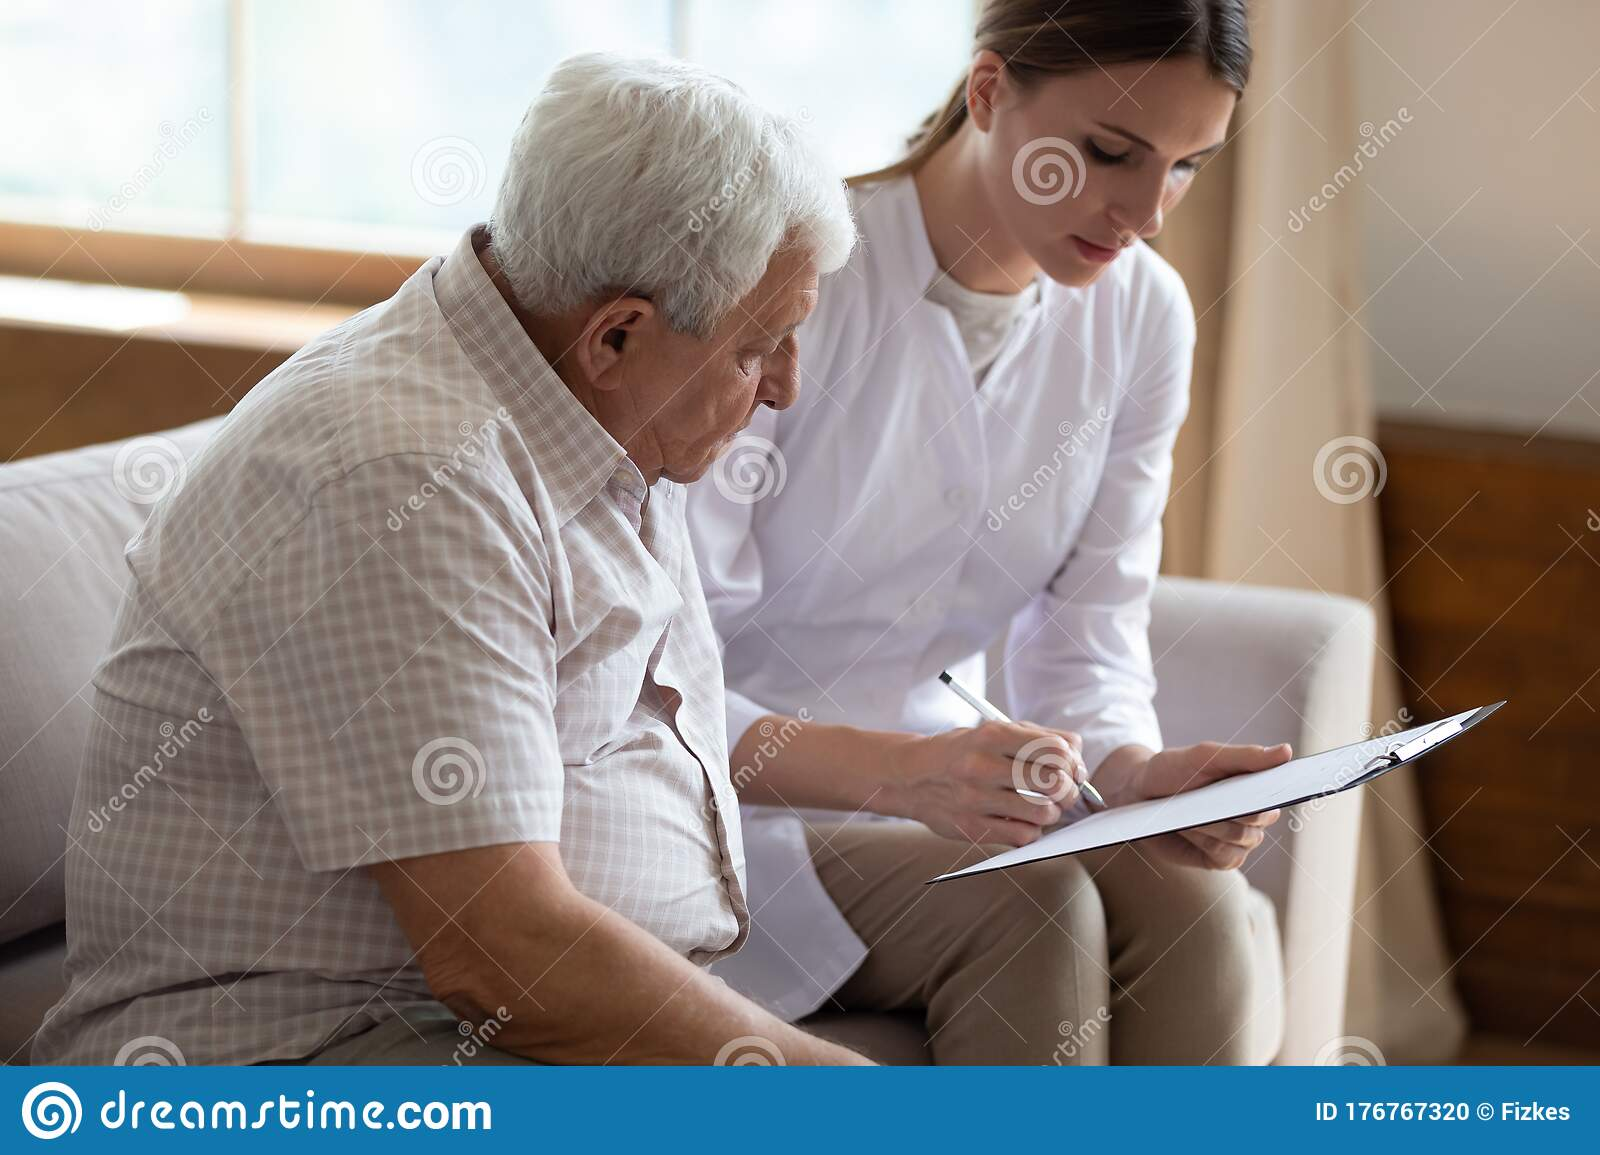 Serious Female Doctor Filling Older Patient Checkup Form